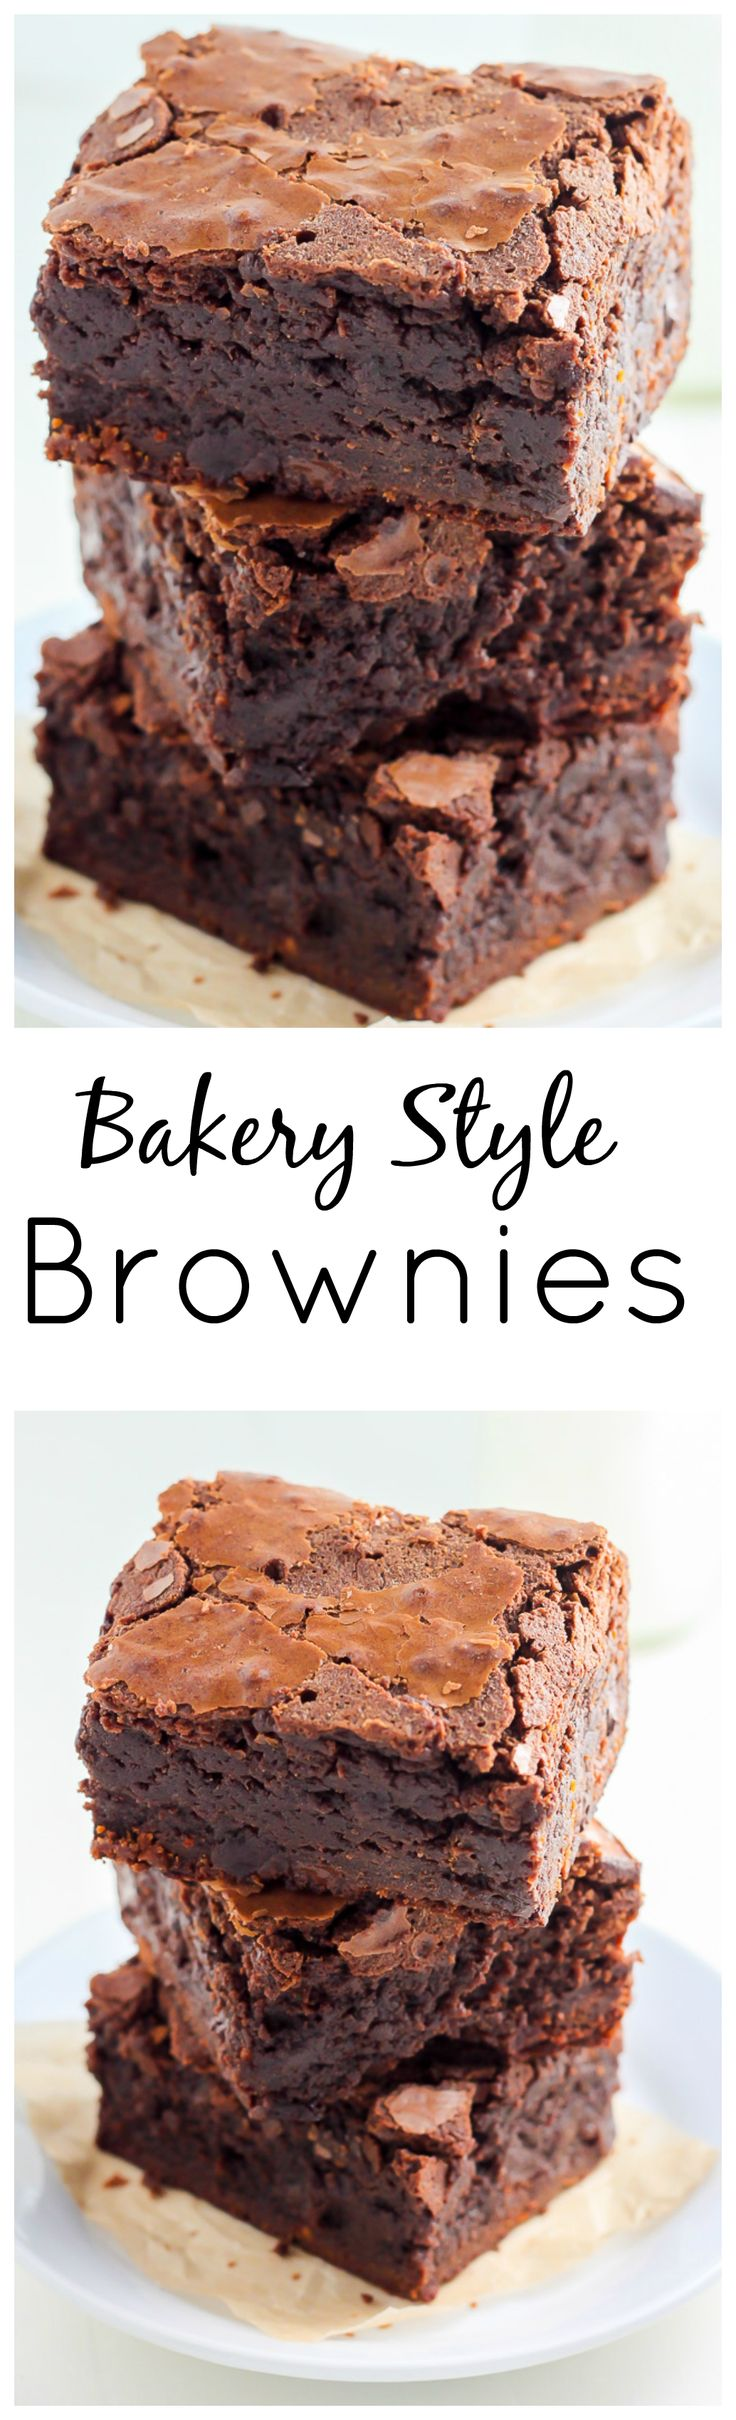 //This is the recipe for the FAMOUS Baked Bakery brownies! Super thick, fudgy, and sure to win you over! #chocolates #recipes #treats